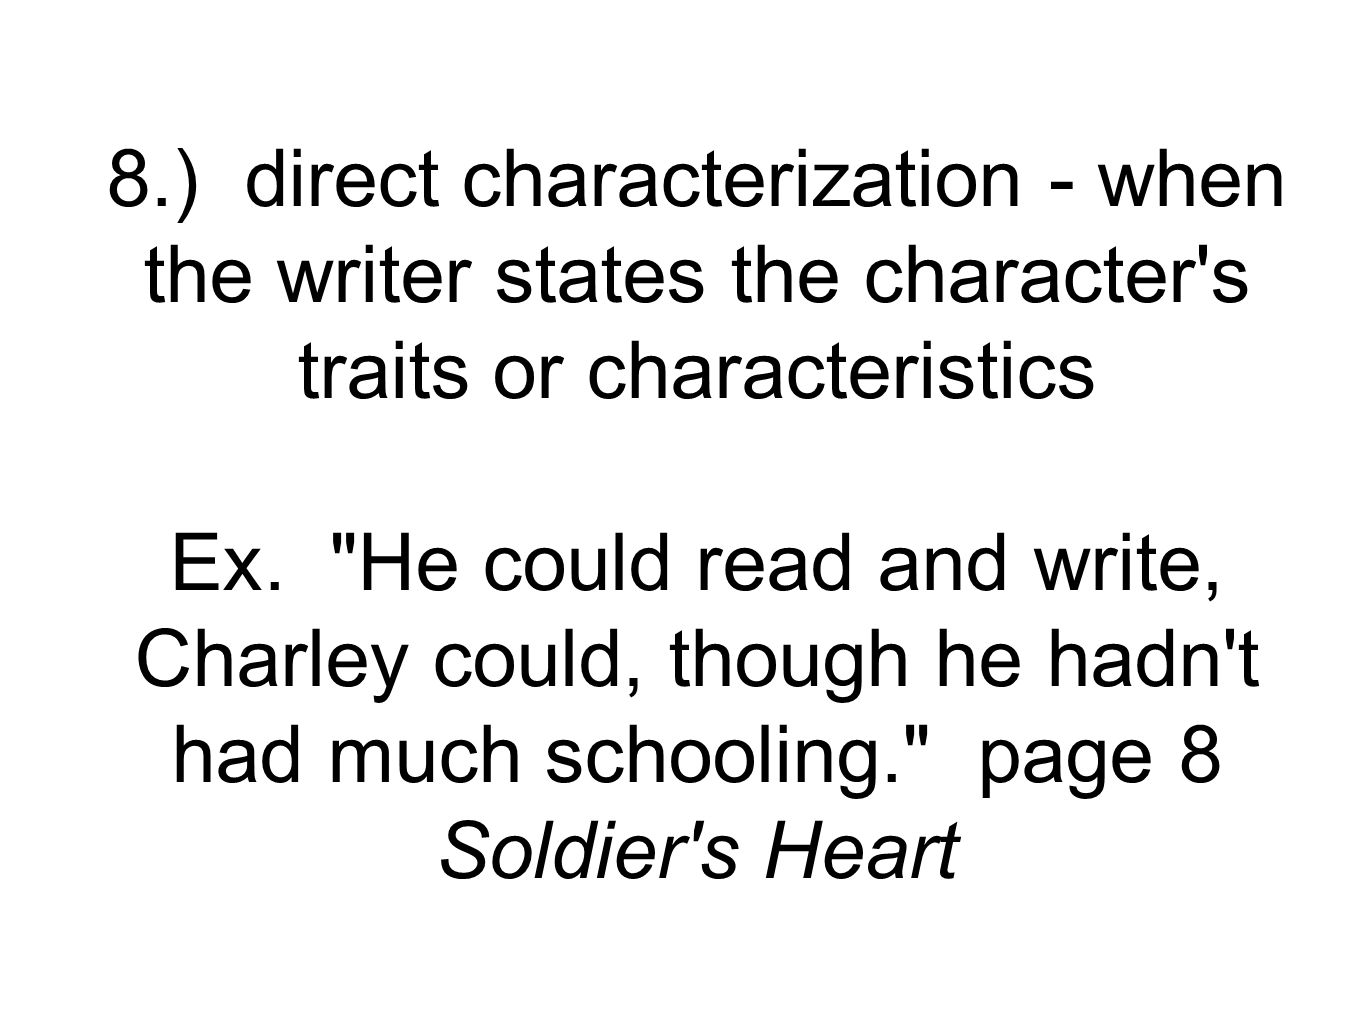 19.) conflict - the problem in the story Ex. the Civil War is an example in Soldier s Heart